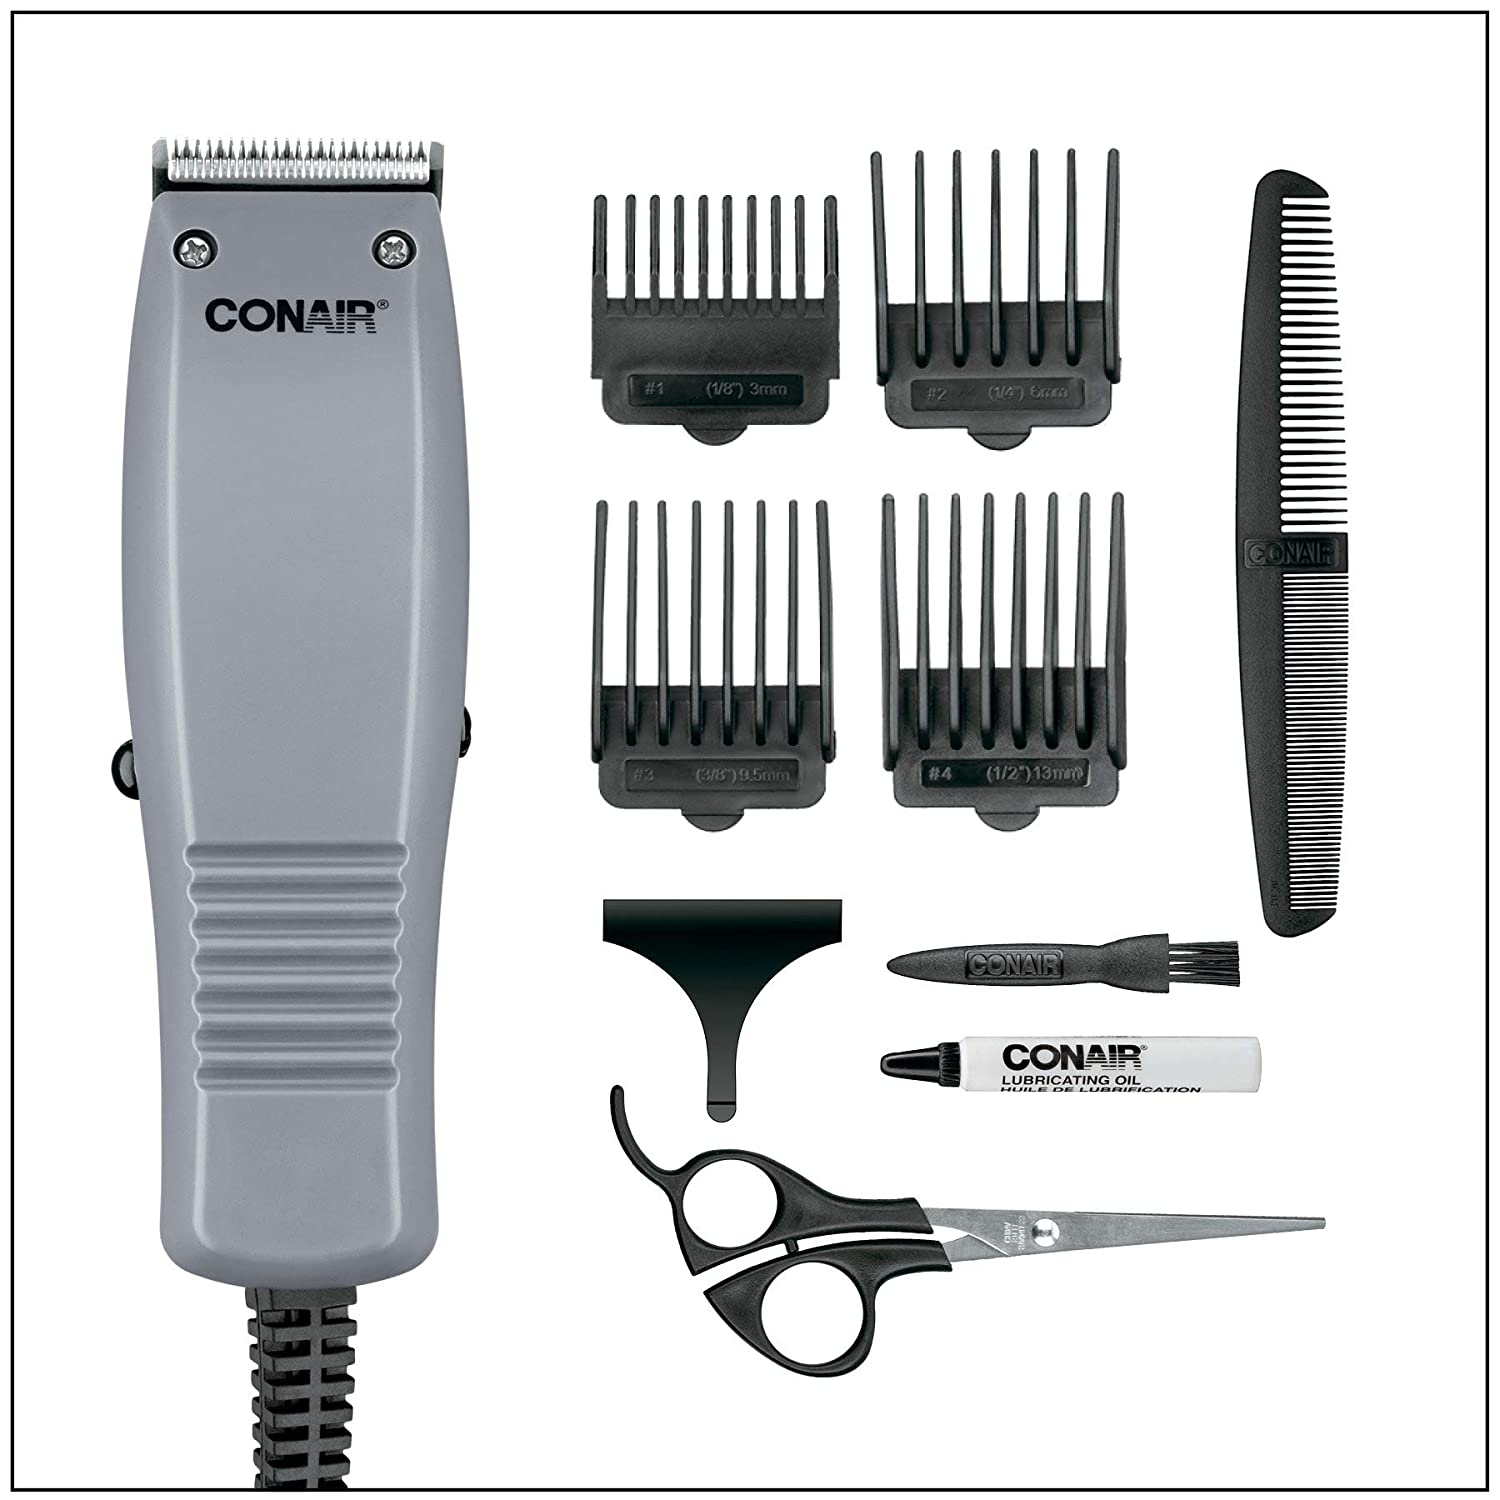 Conair Simple Cut 11-piece Home Haircut Kit